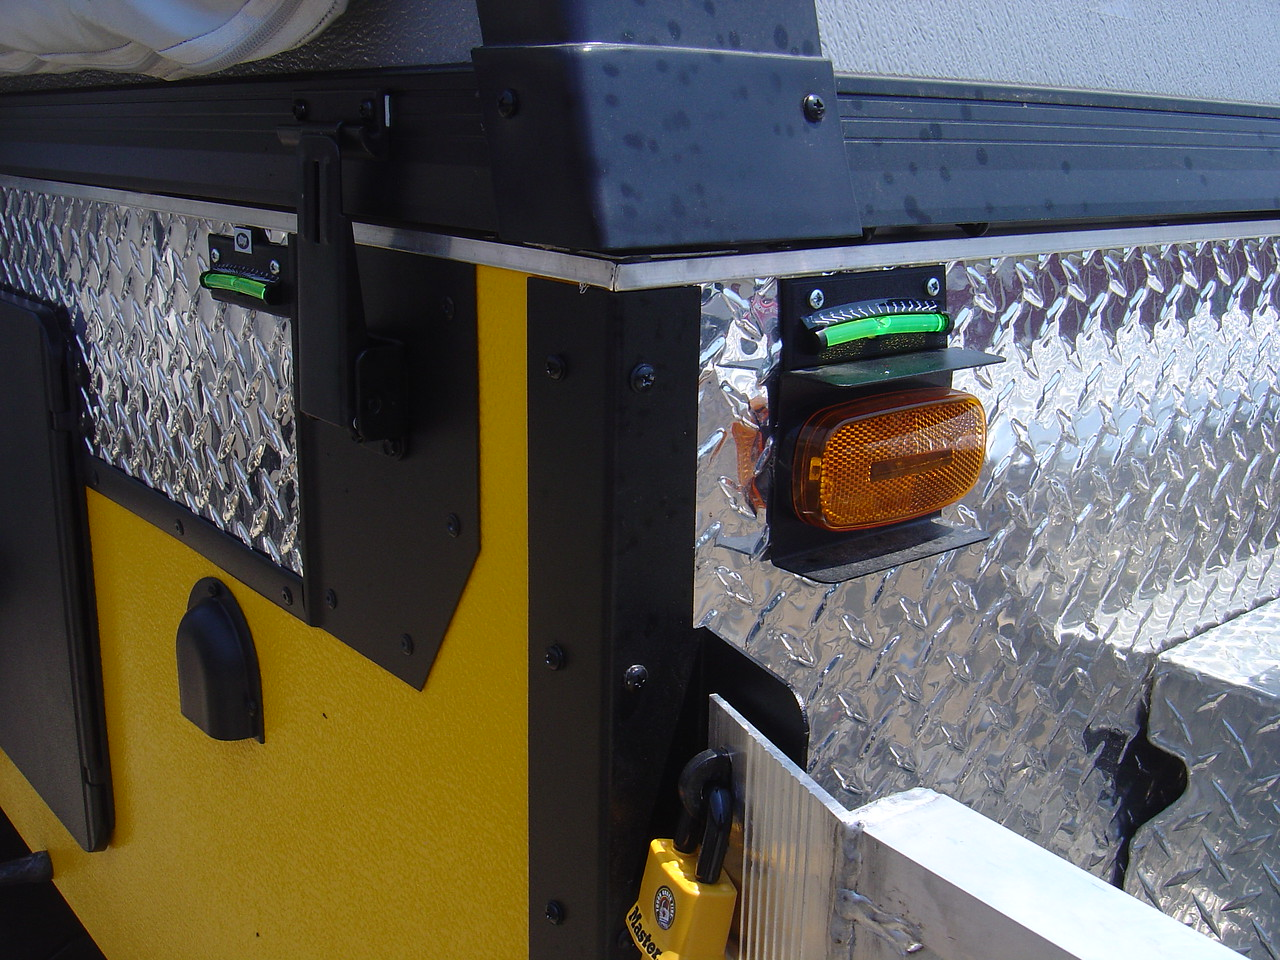 I've added levels to both corners sides (front and side) of the front of the PUP.  This allows me to quickly see what adjustmenets I need to make to level the PUP.  Note - I have another pair of levels mounted on the other side of the trailer.